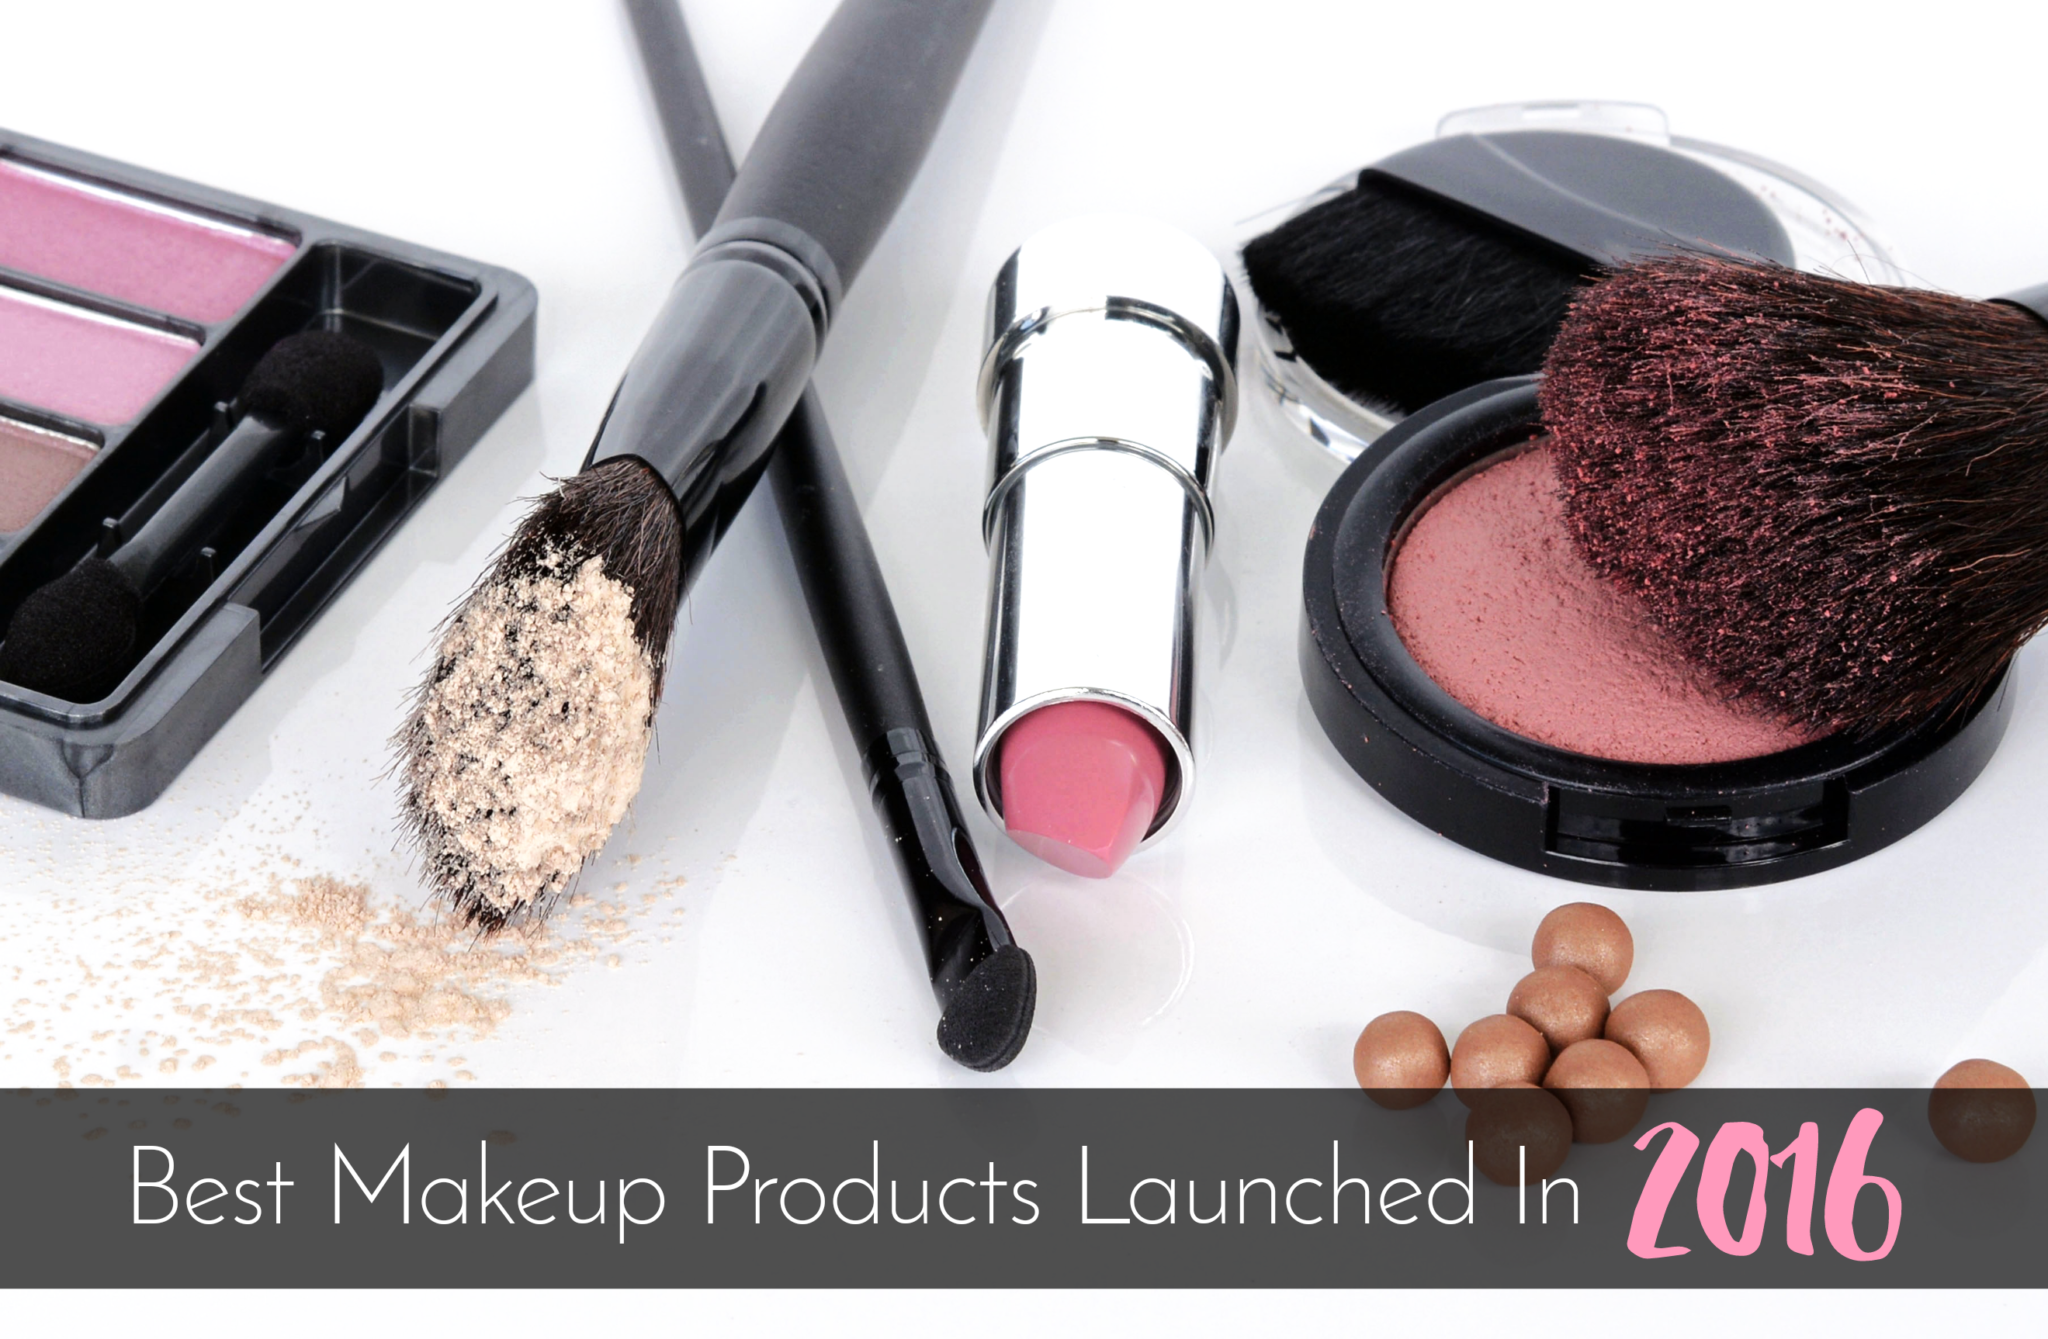 Best Makeup Products Launched In 2016